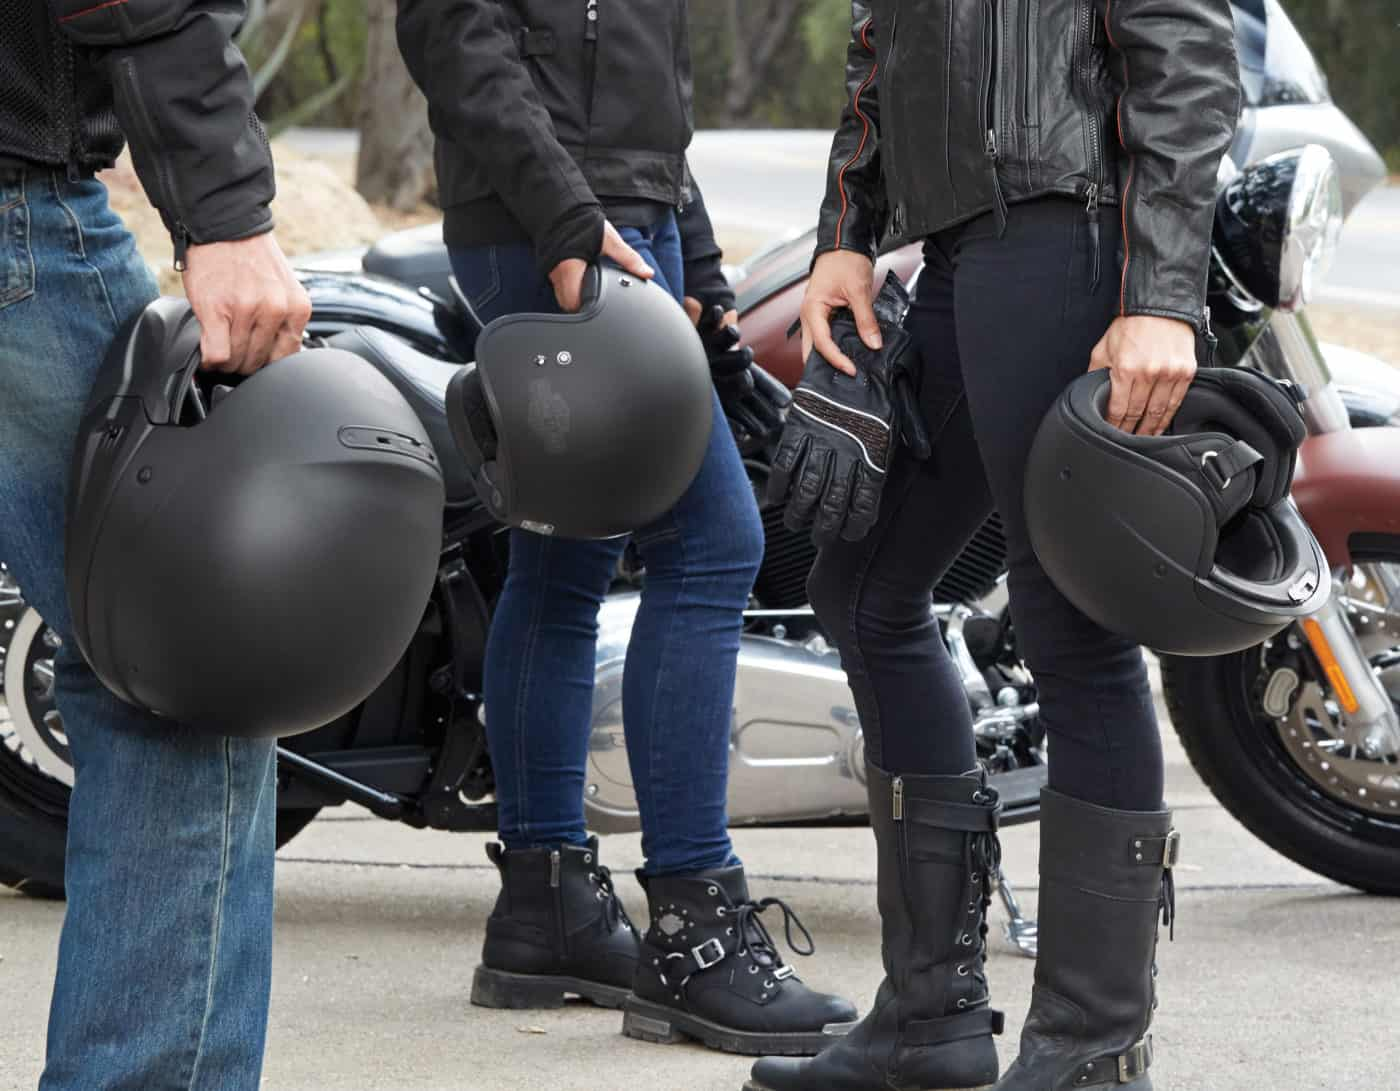 Friends with different types of motorcycle helmets in their hands.